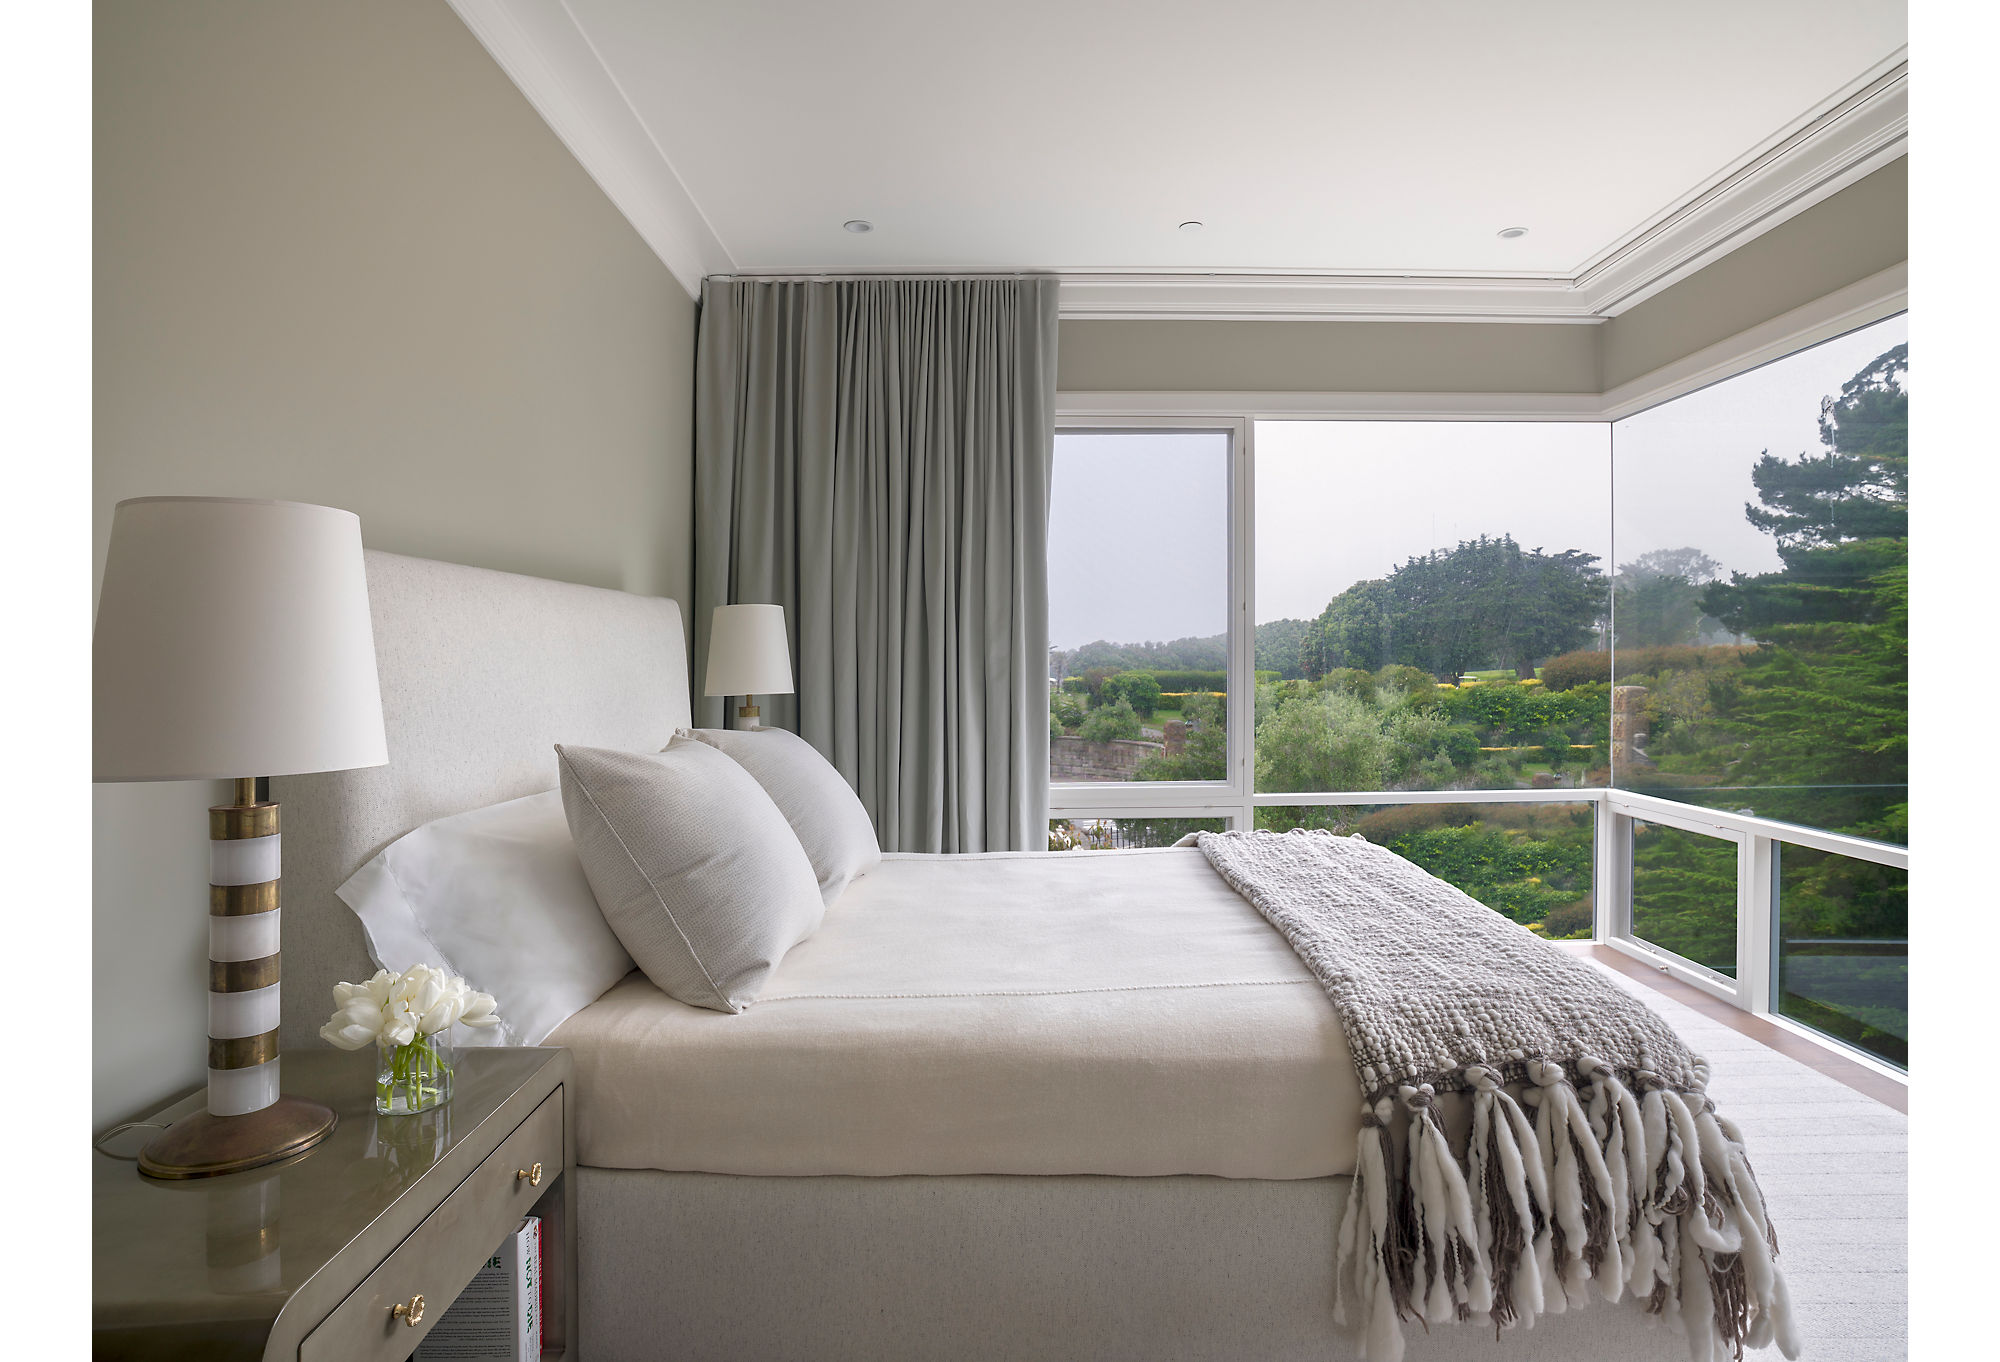 The master bedroom, painted a light celadon, is devoid of art or many accessories because the homeowners didn't want to distract from the view. On clear days, they can even see the Golden Gate bridge.